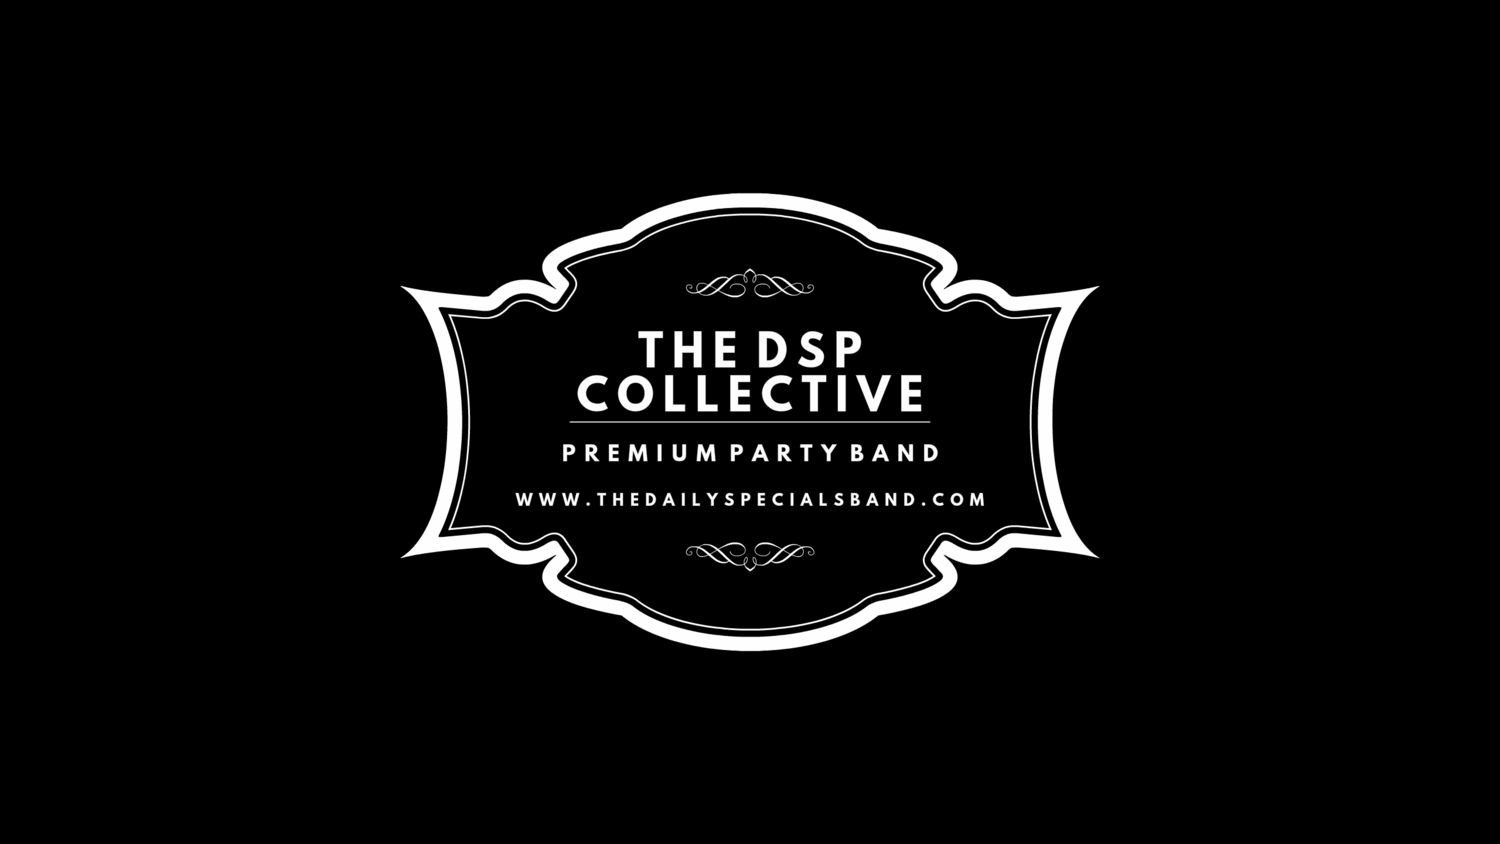 THE DSP COLLECTIVE